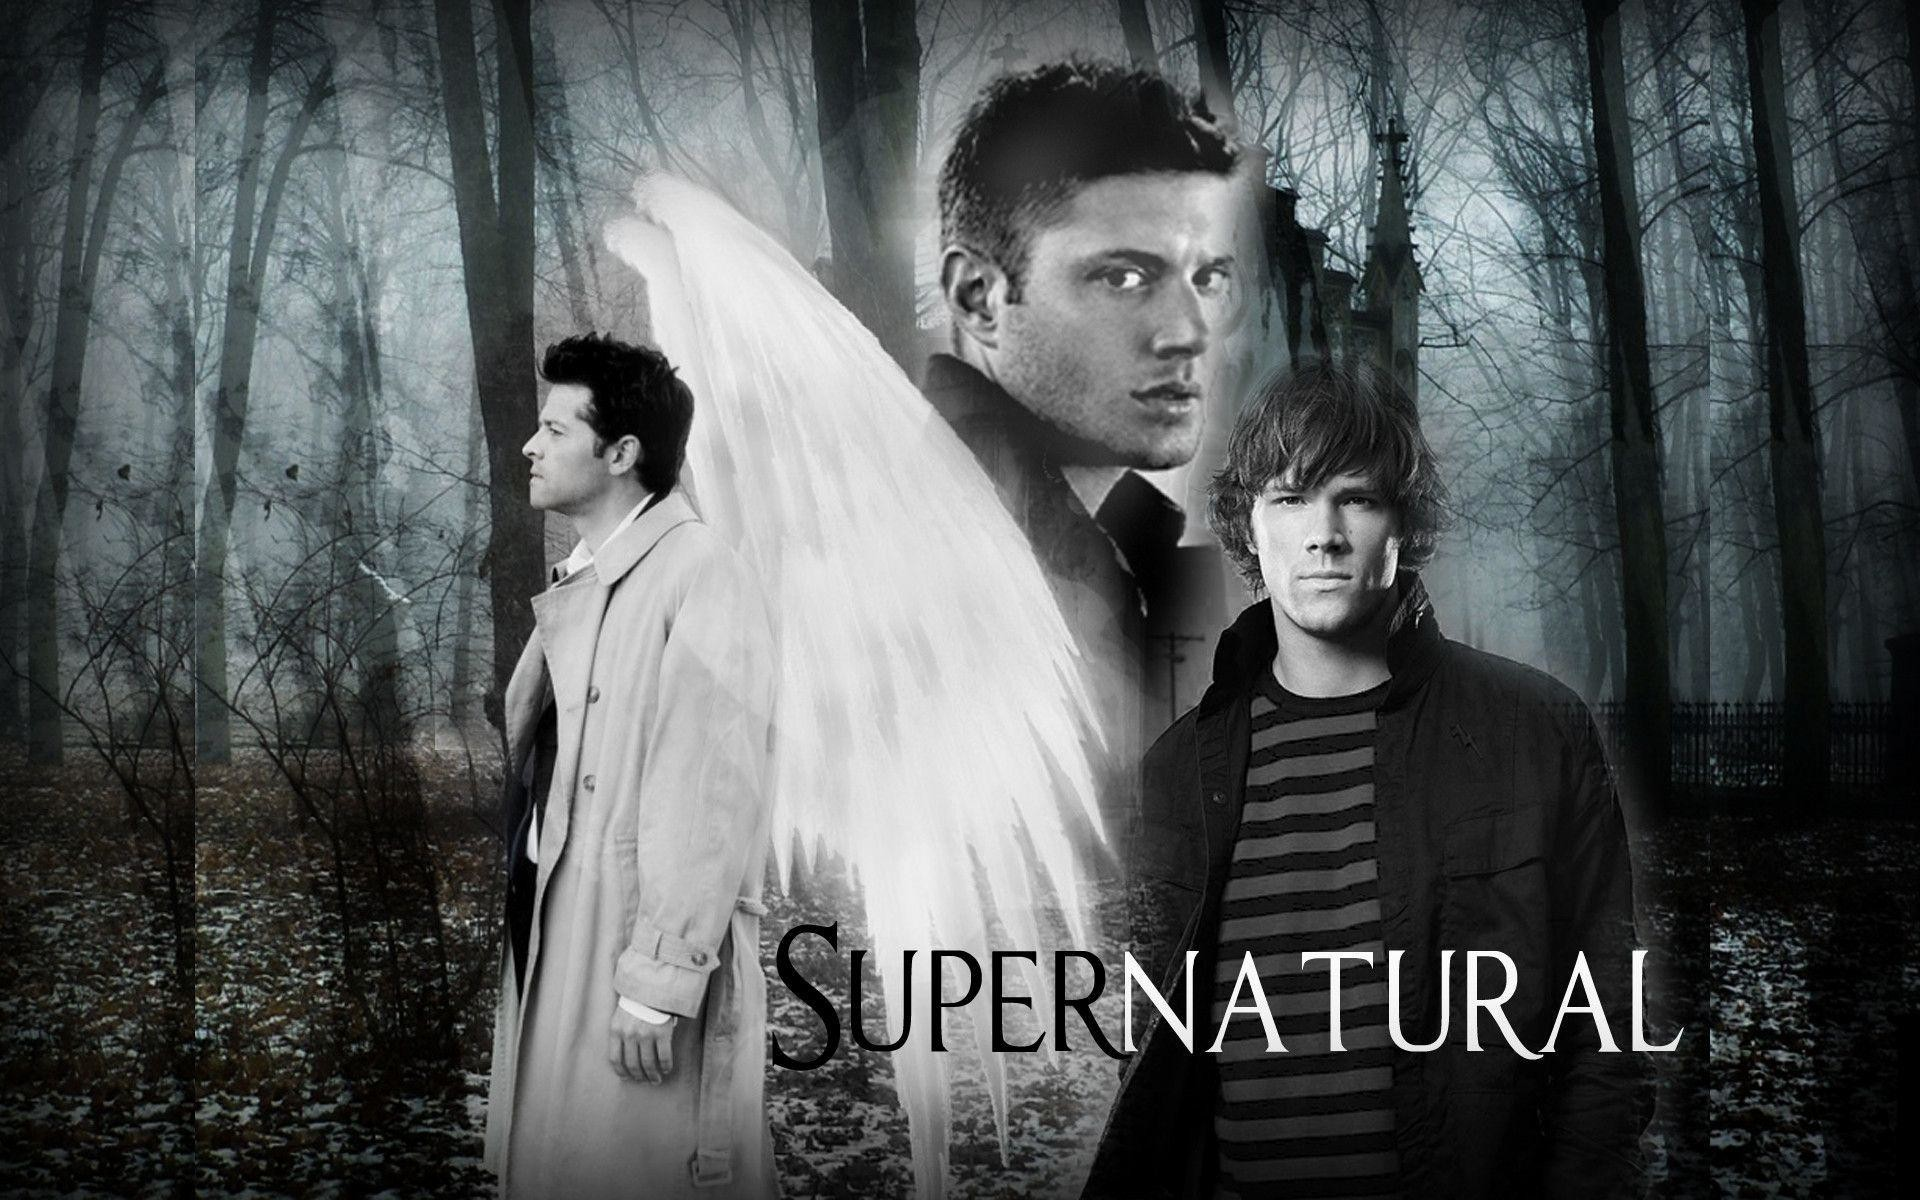 Castiel Supernatural Iphone HD Wallpapers – Page 2 of 3 – wallpaper.wiki